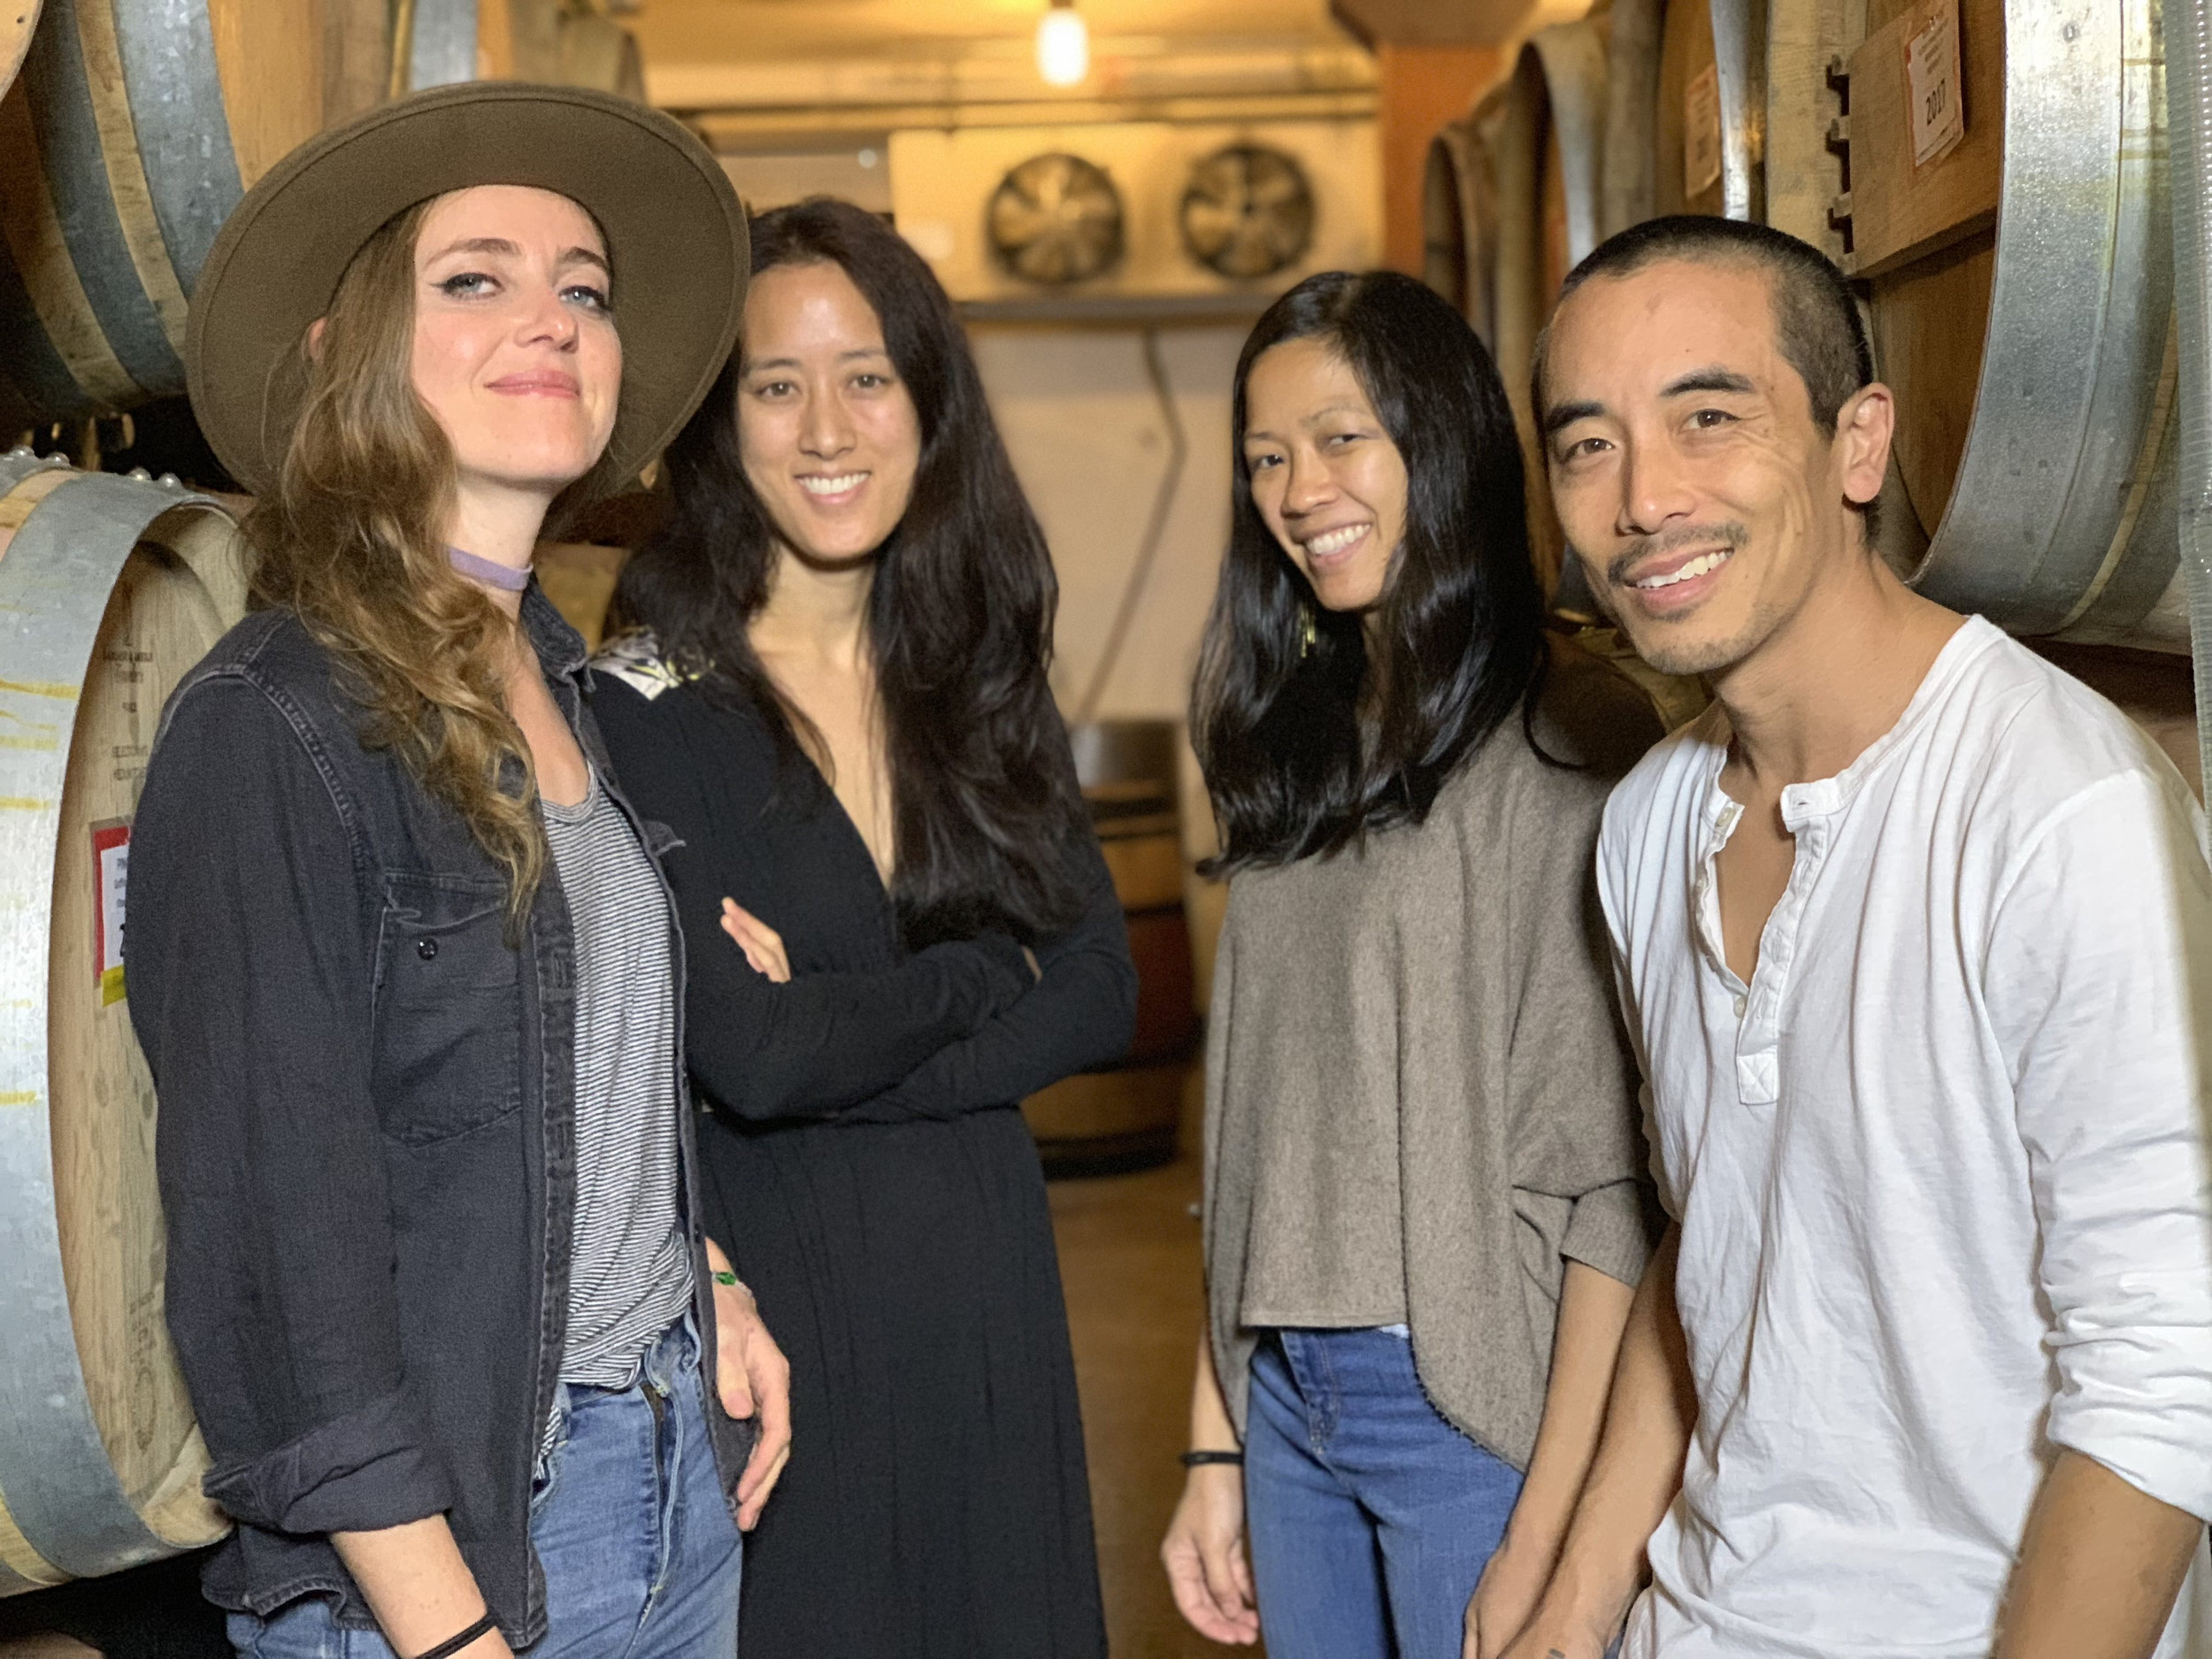 Cellar Sessions at City Winery in NYC with Vienna Teng, Melissa Tong, and Megan Slankard